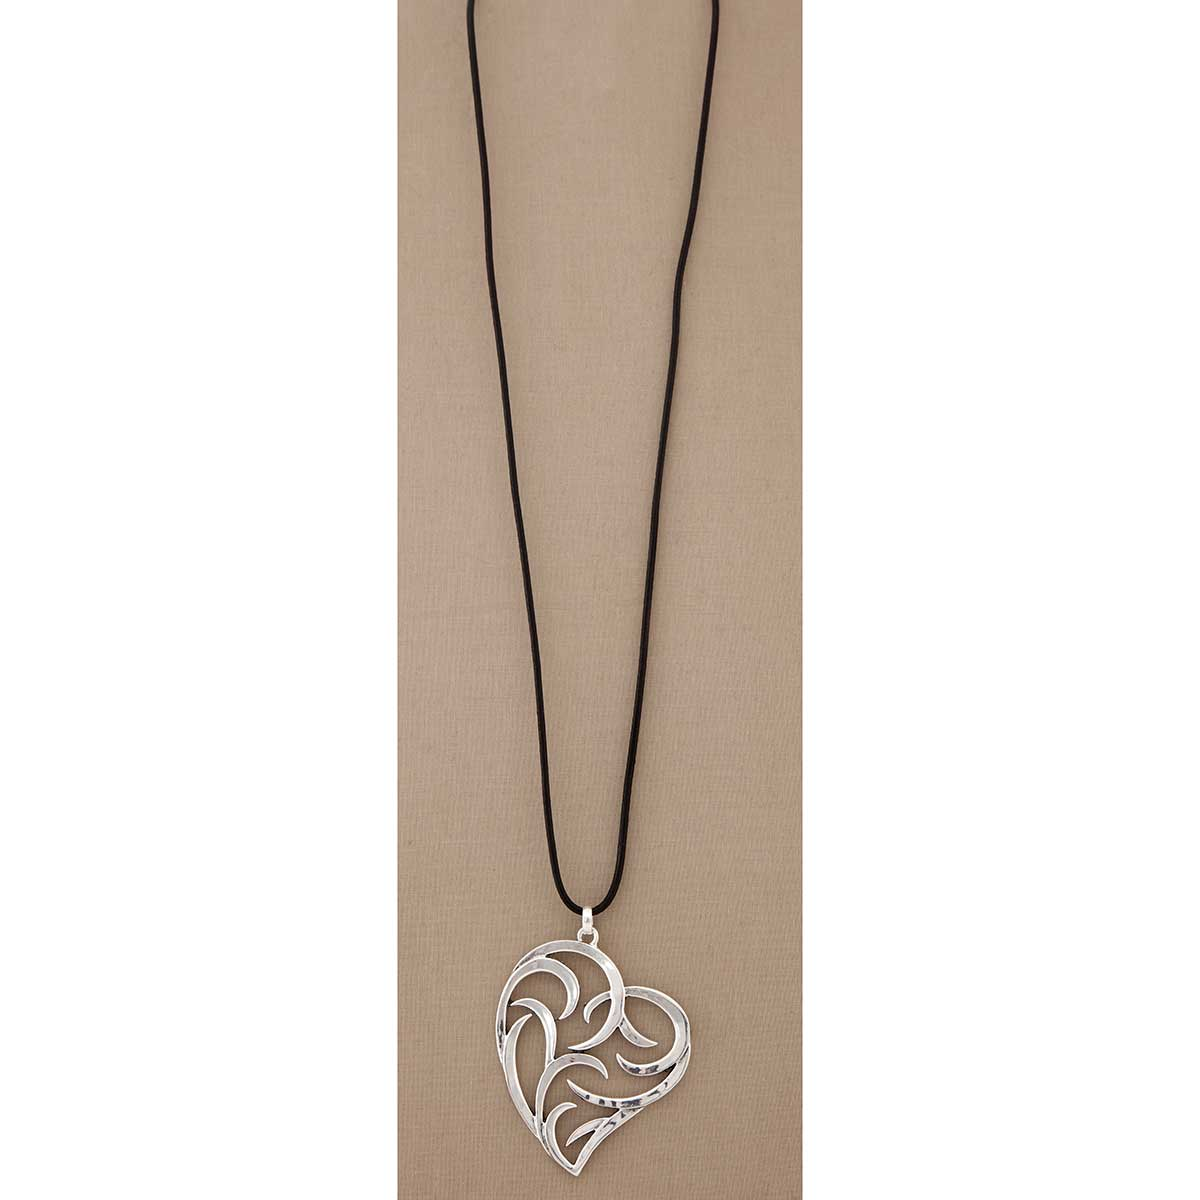 Silver Swirl Heart on Black Cord Necklace